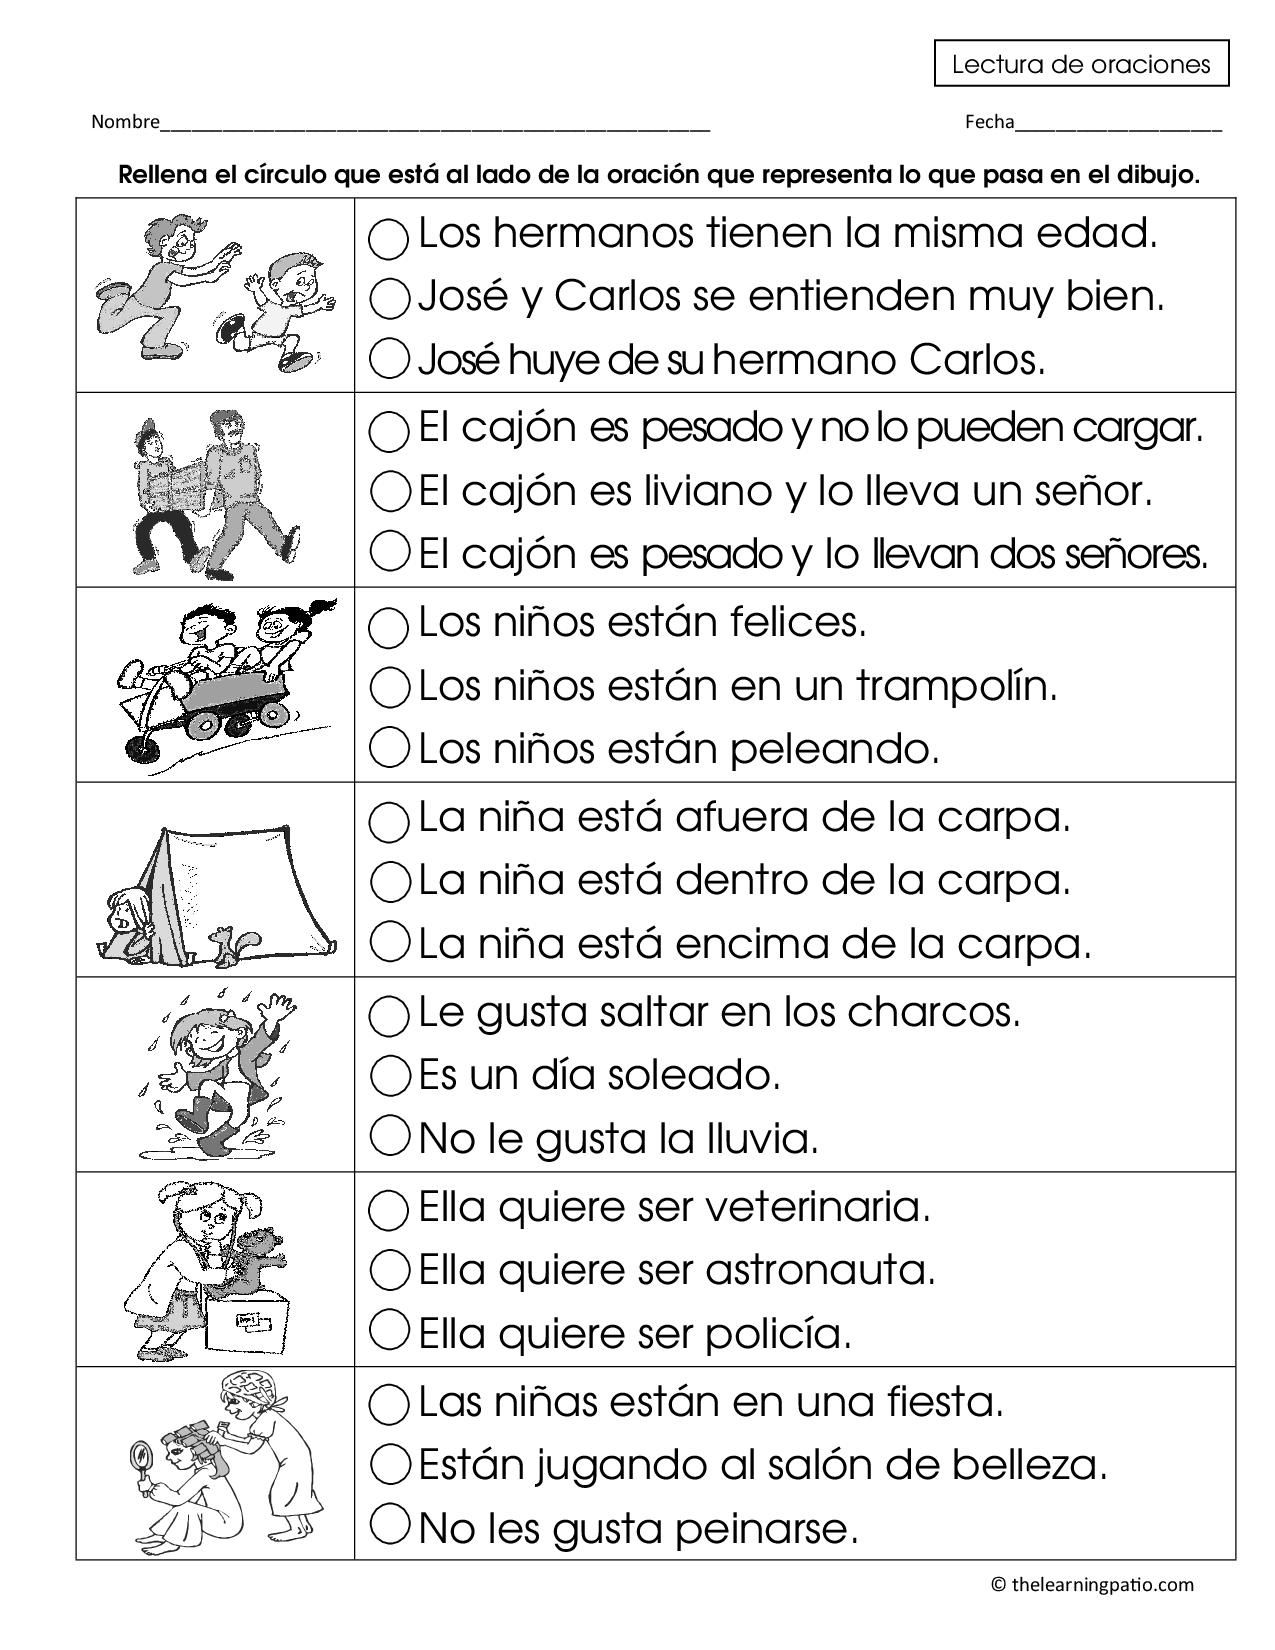 Pin By The Learning Patio On Test Prep Spanish Reading